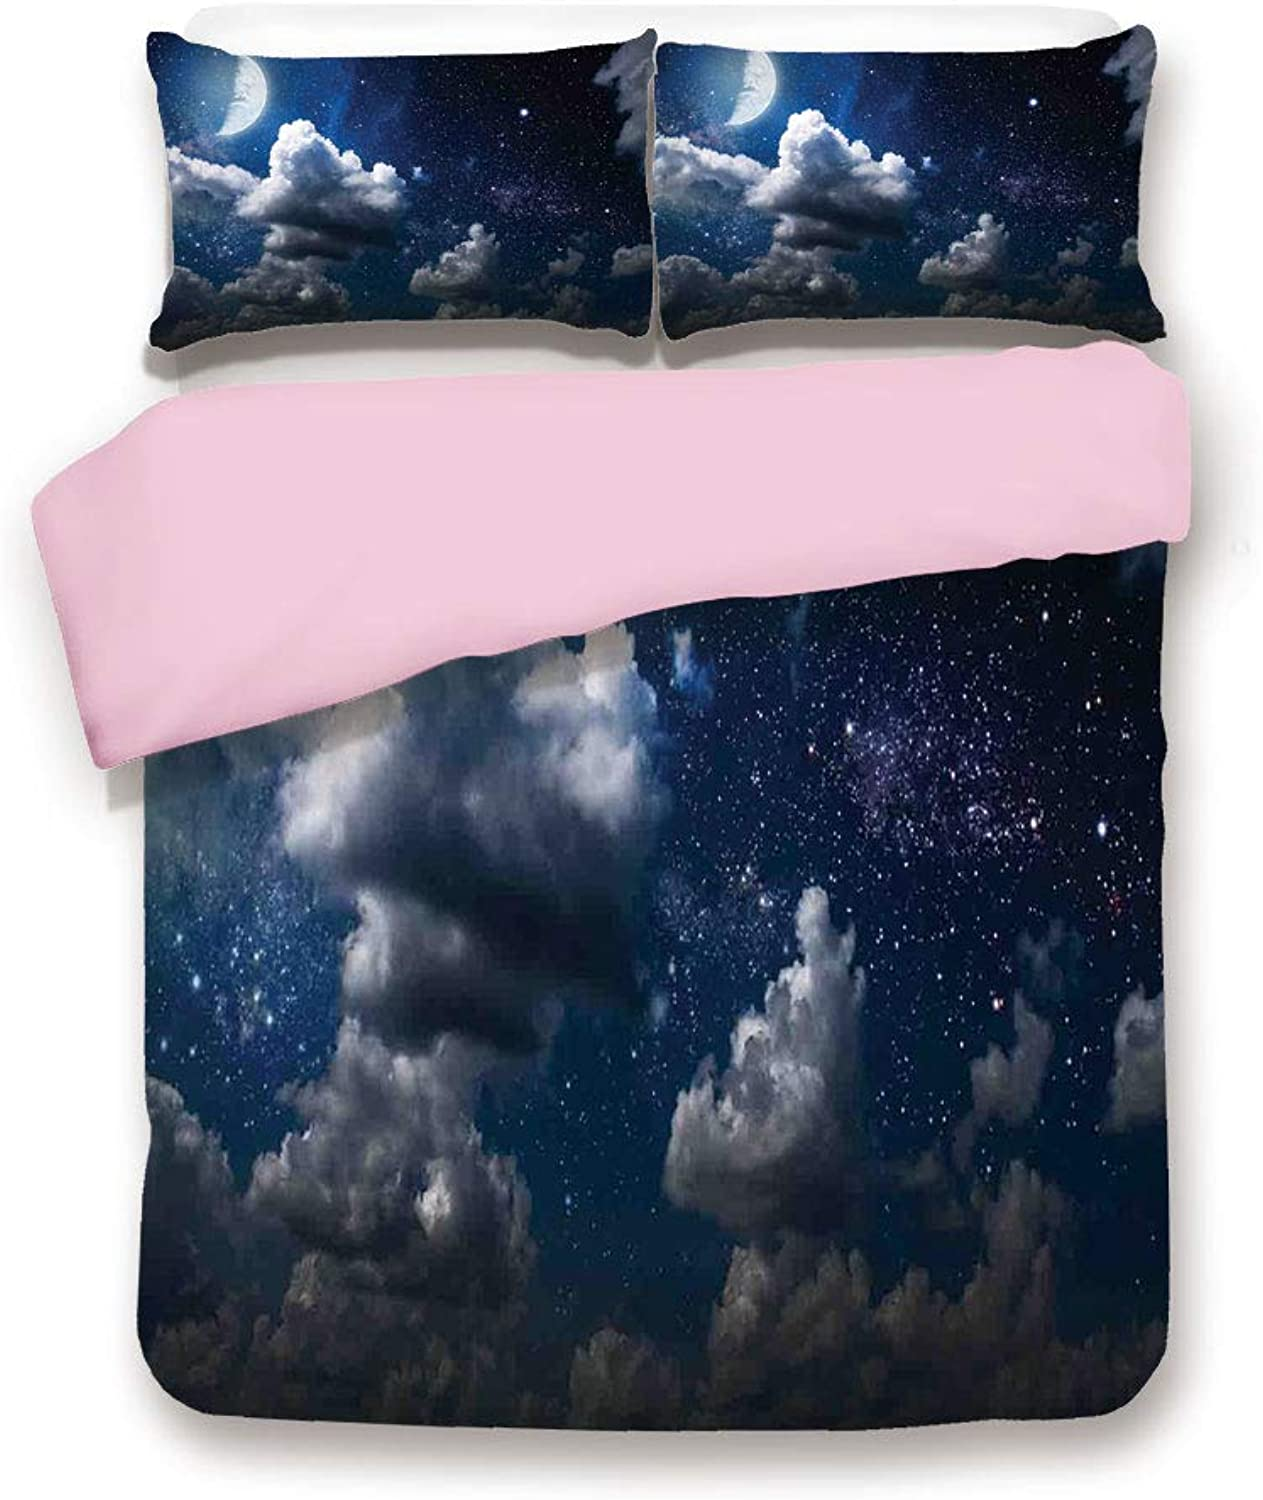 Pink Duvet Cover Set& xFF0F;King Size& xFF0F;Celestial Solar Night Scene Stars Moon and Clouds Heaven Place in Cosmos Theme& xFF0F;Decorative 3 Piece Bedding Set with 2 Pillow Sham& xFF0F;Best Gift For Girls Women& xFF0F;Dark bluee Whit